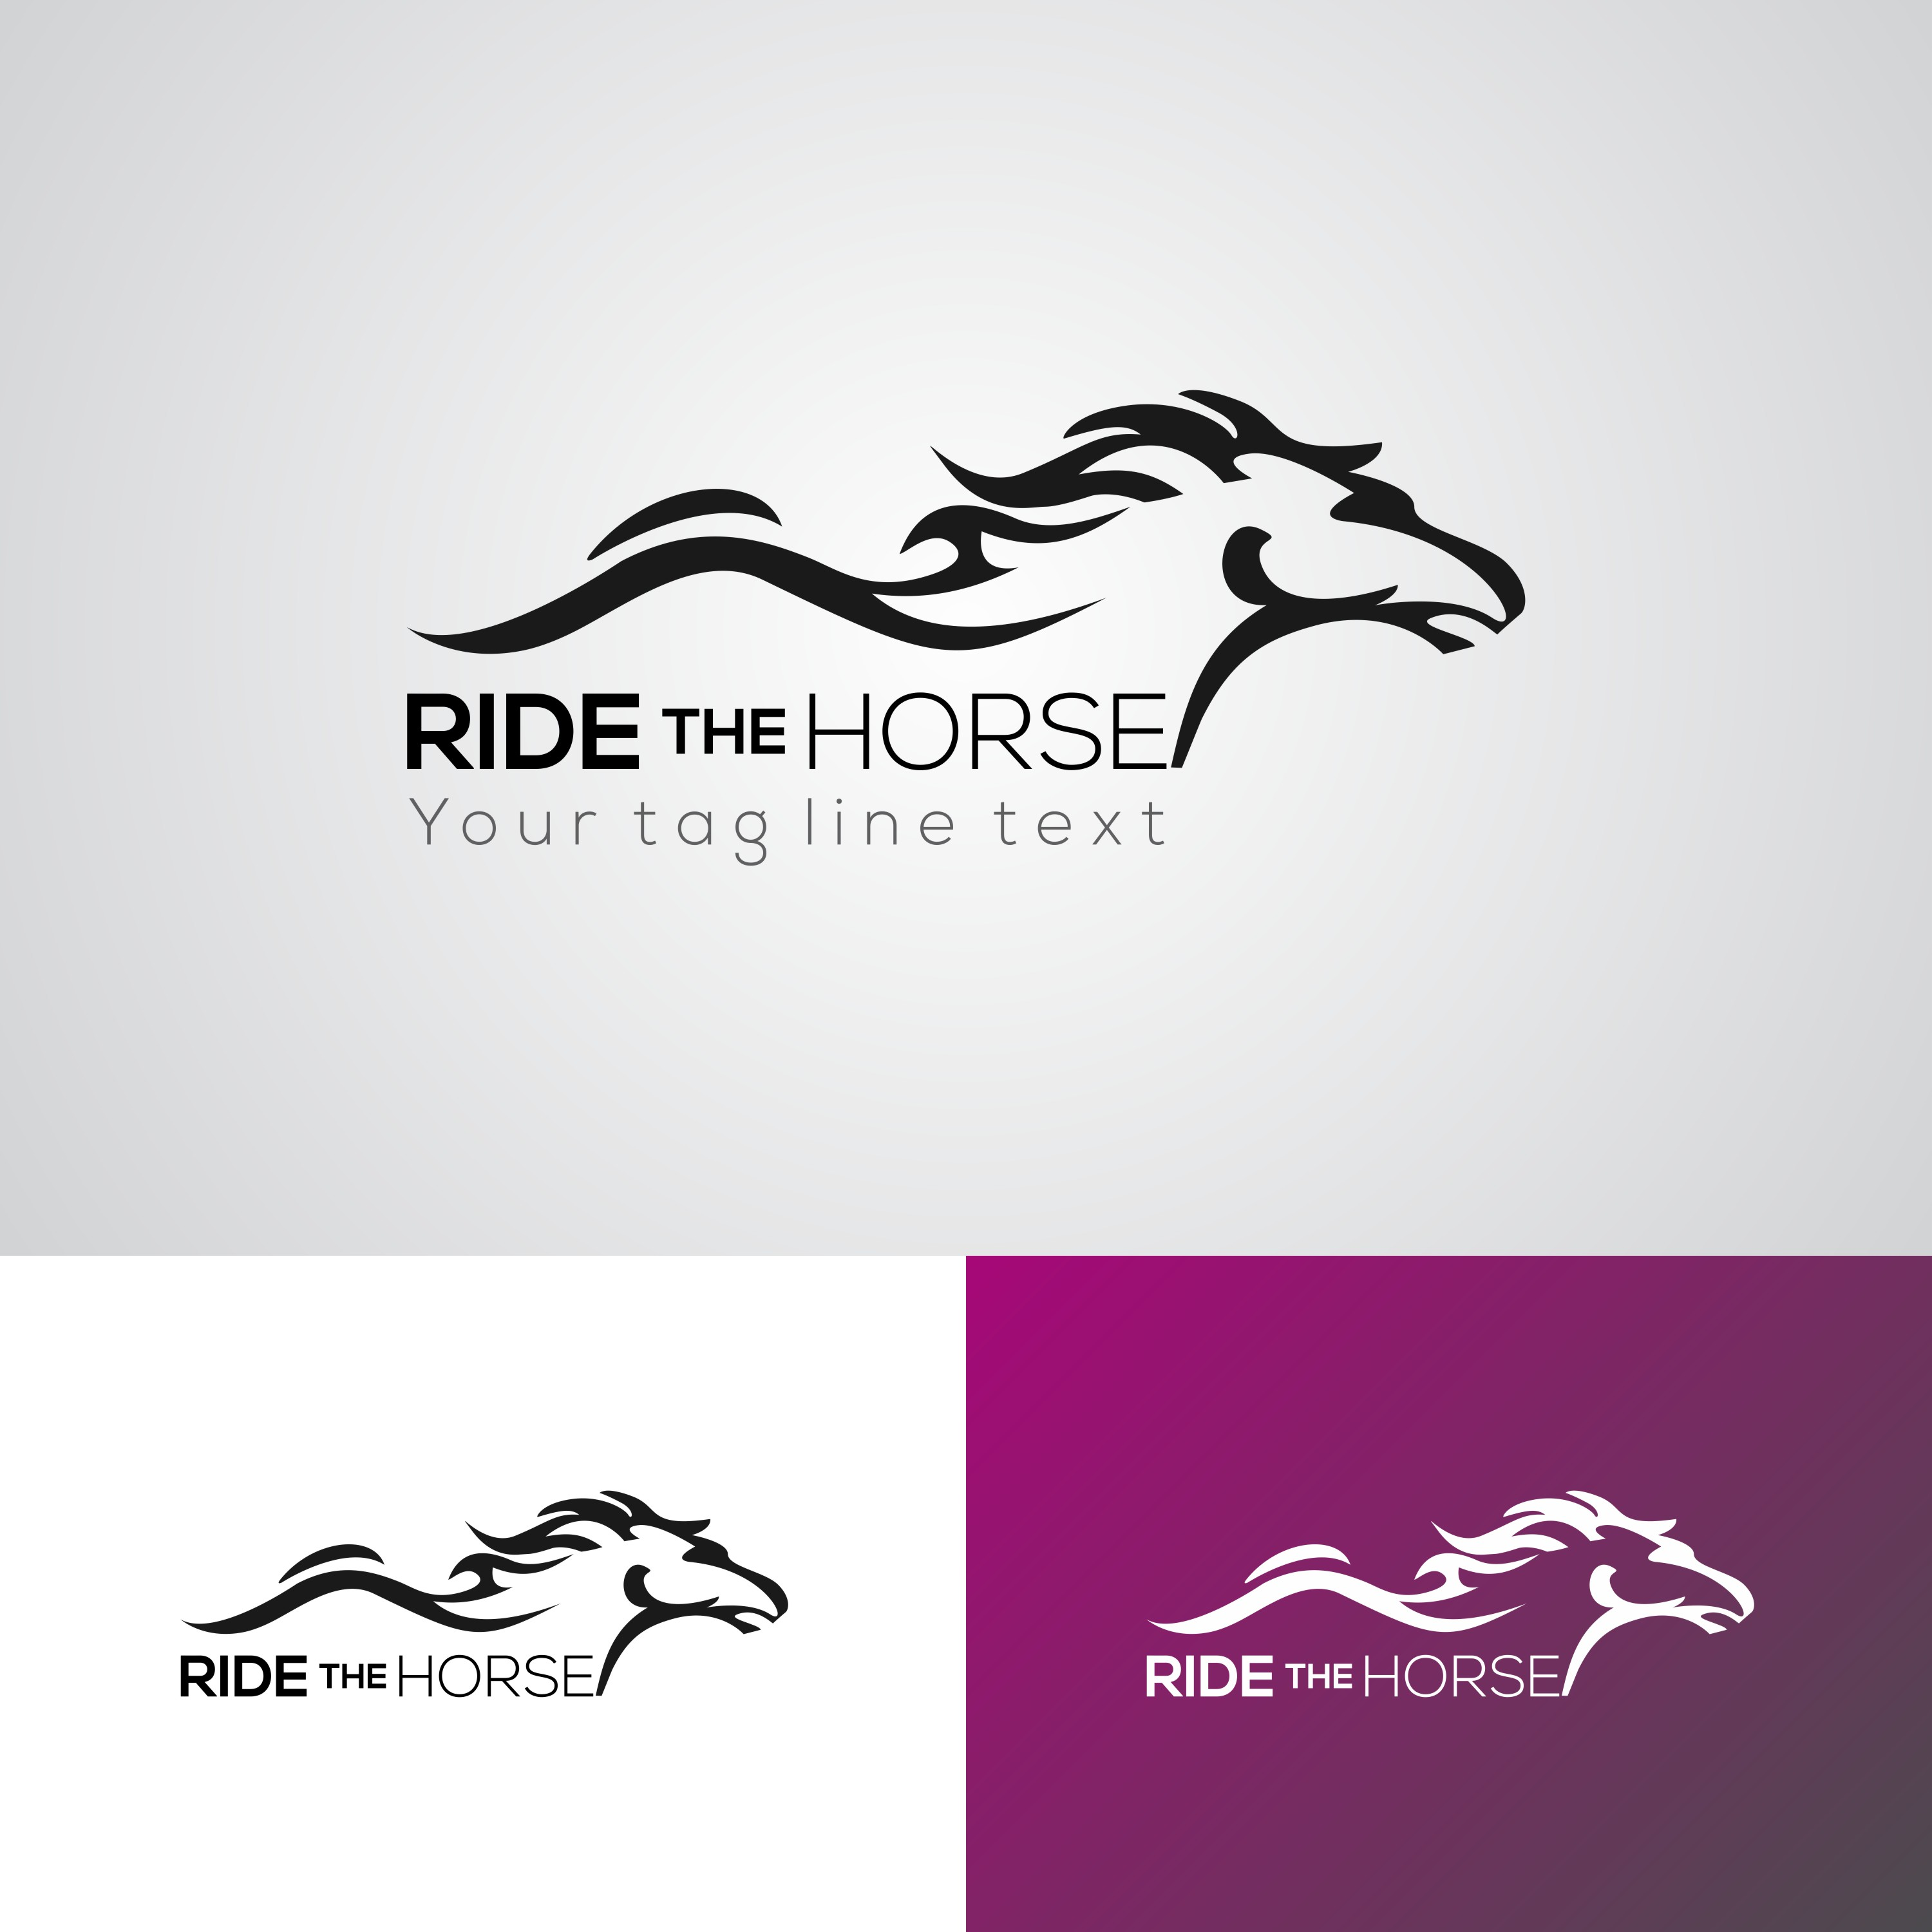 Creative Ride The Horse Logo Design Template Download Free Vectors Clipart Graphics Vector Art